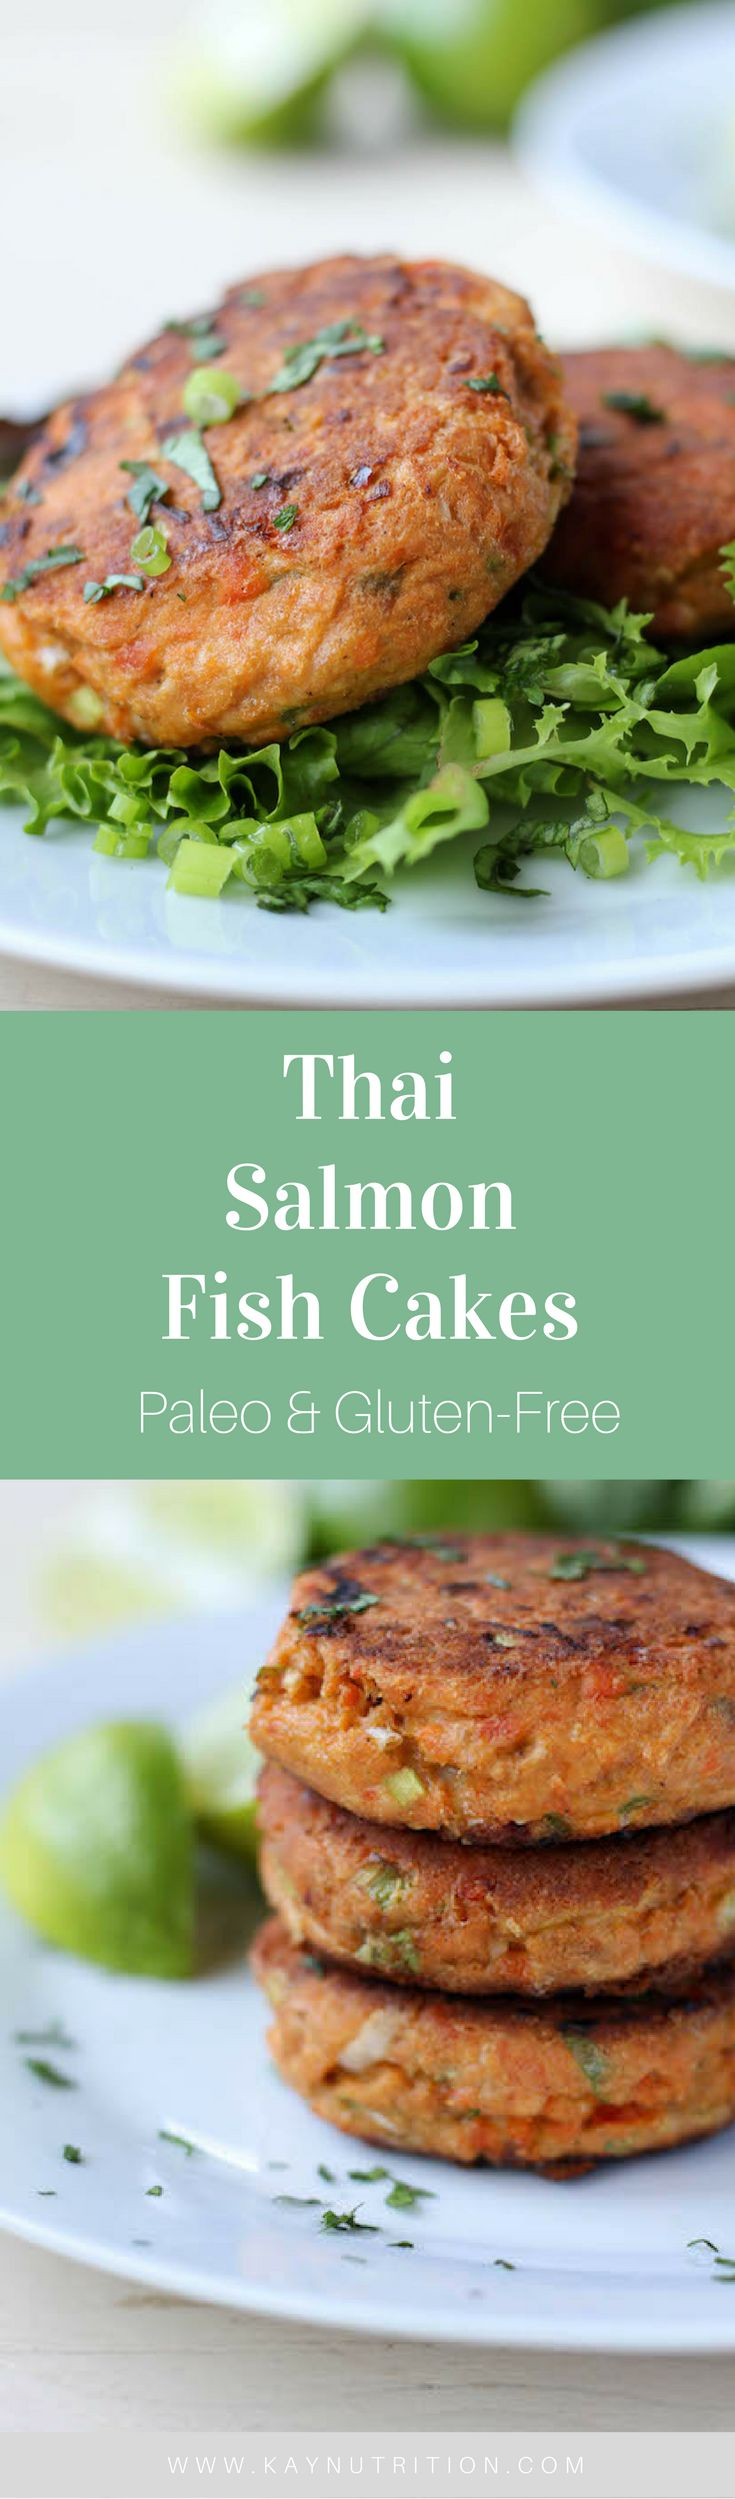 Best 25 salmon fish cakes ideas on pinterest canned for Salmon fish cakes